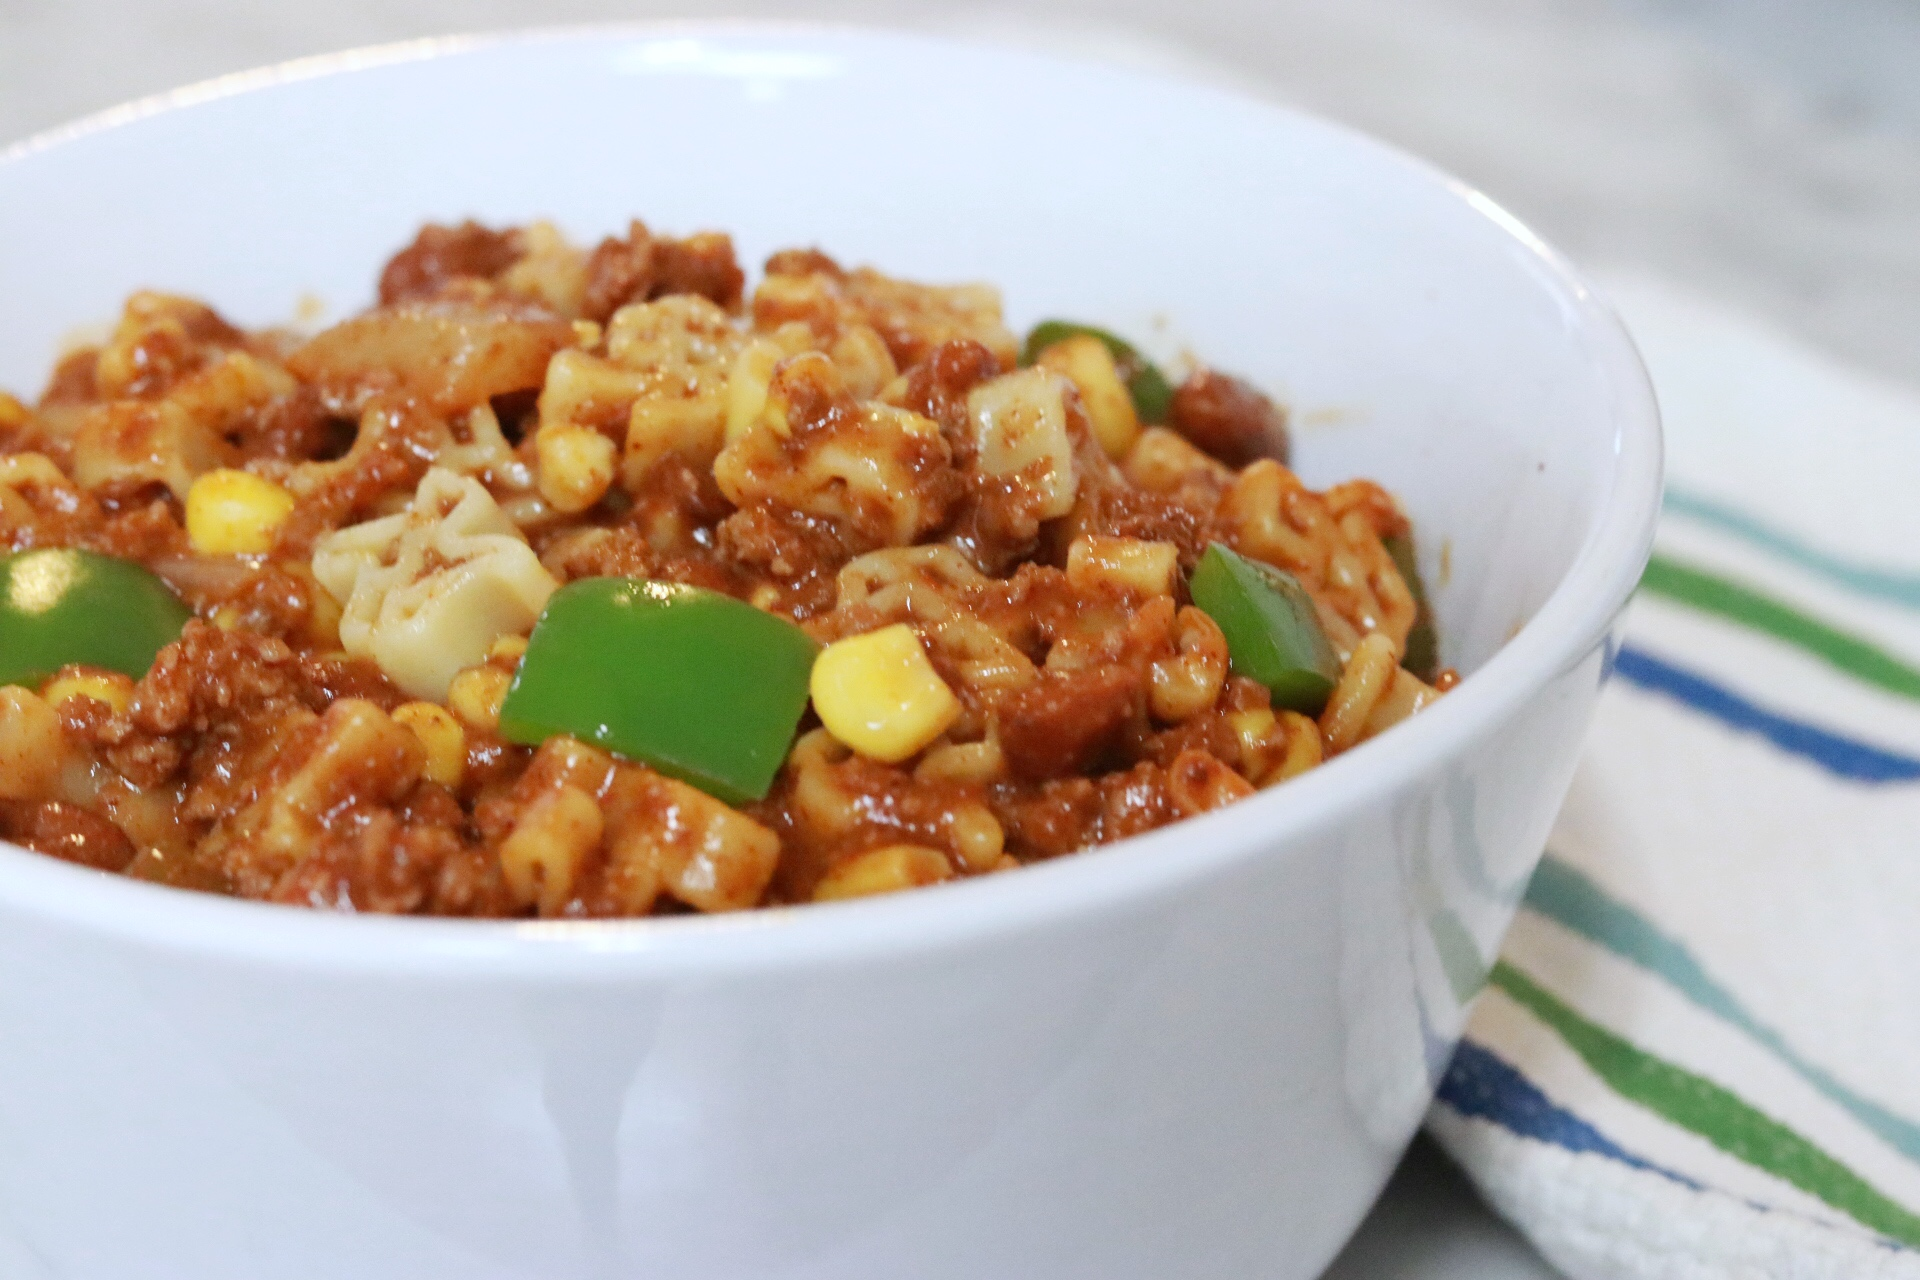 Pasta with chili, bell peppers, and corn